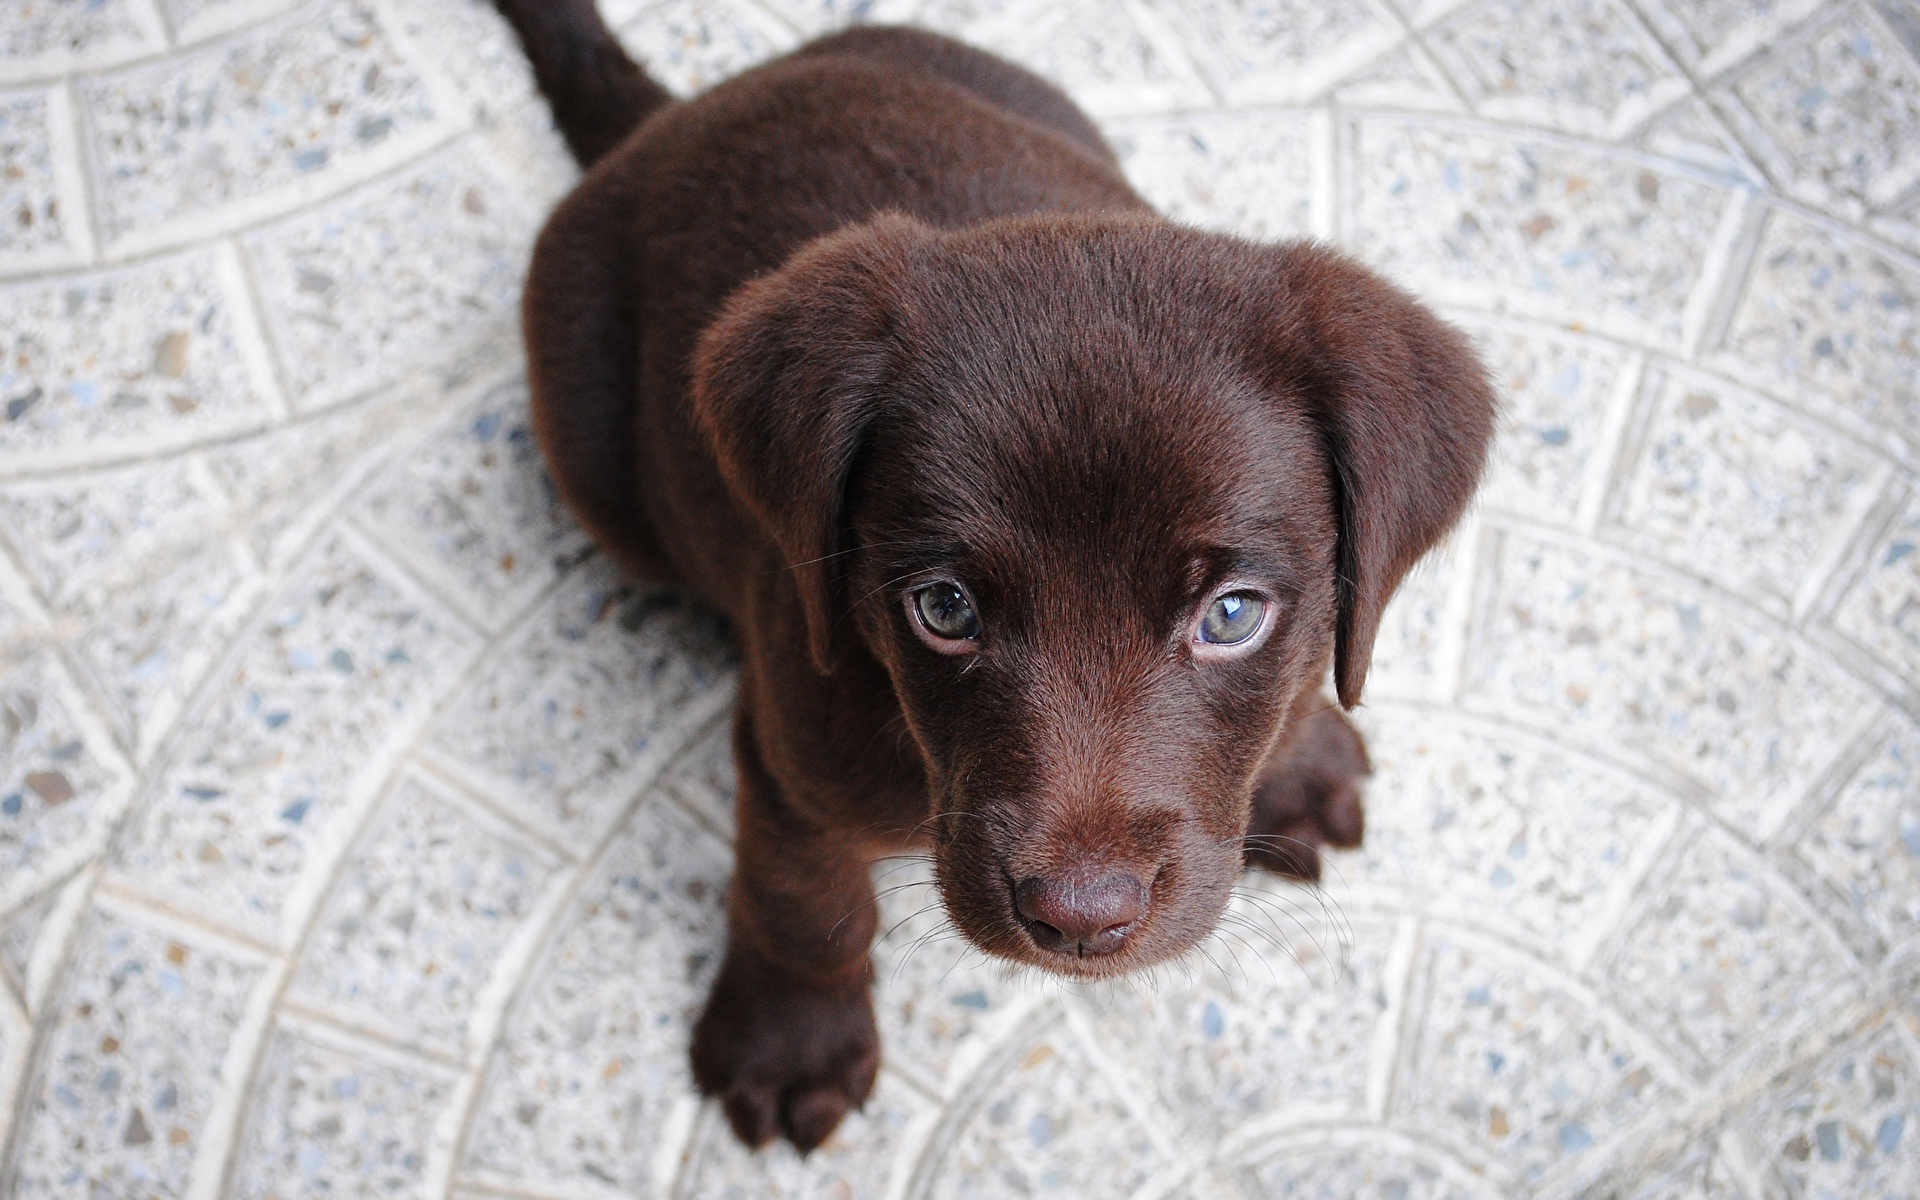 Photos Puppy Labrador Retriever Dogs From above animal Staring 1920x1200 puppies dog Glance Animals